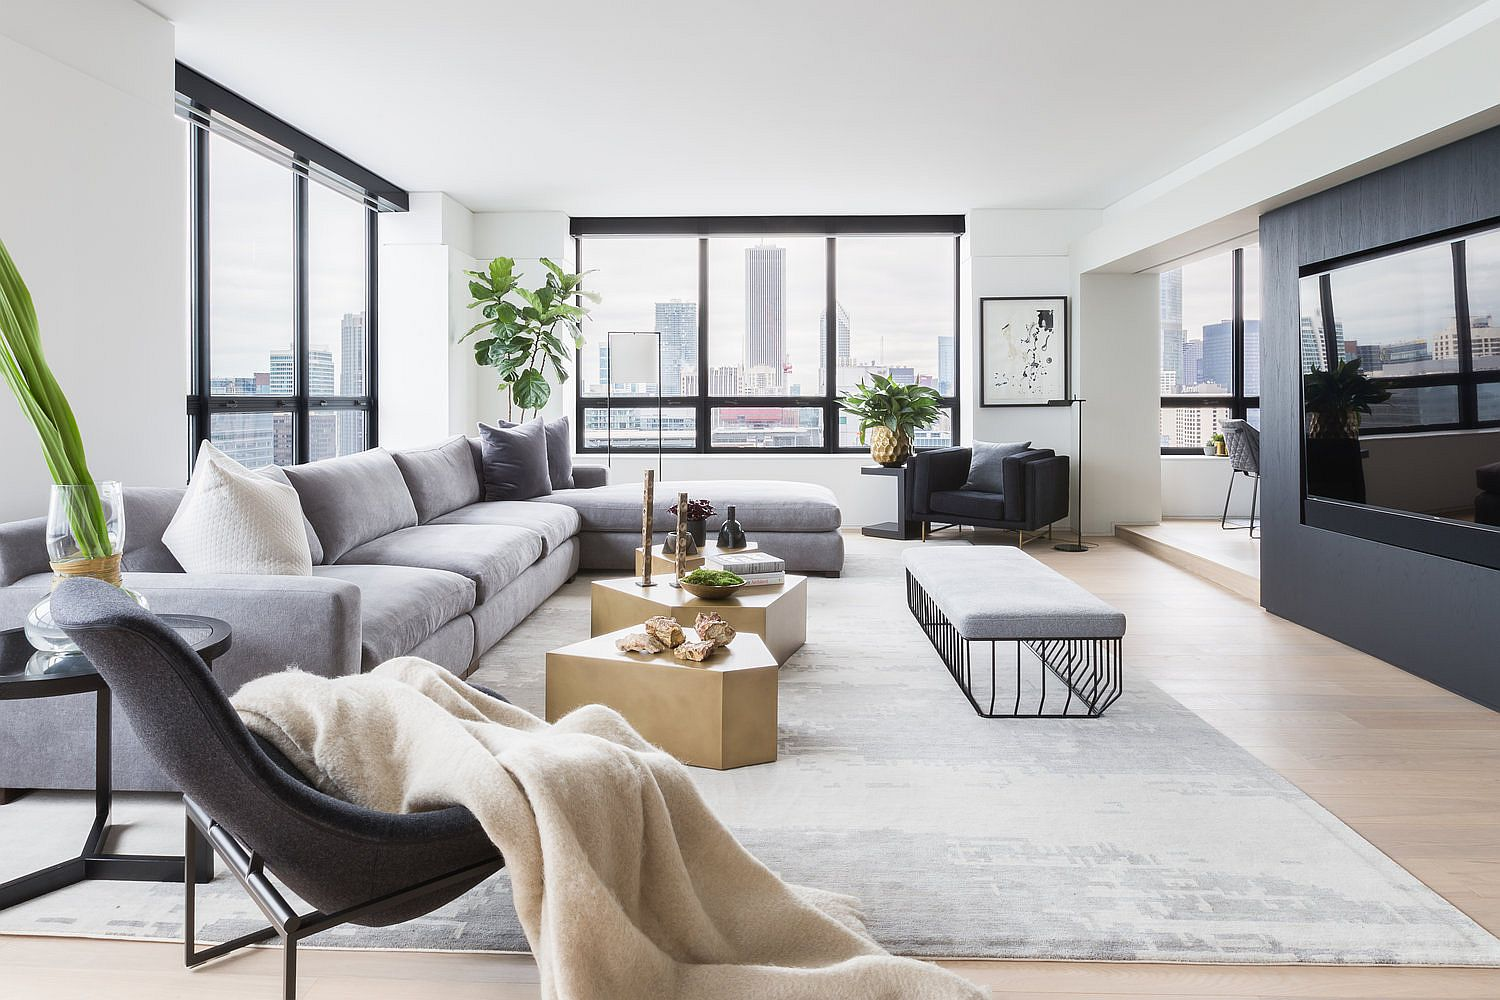 Living room of revamped Water Tower Flat in Chicago with contemporary decor